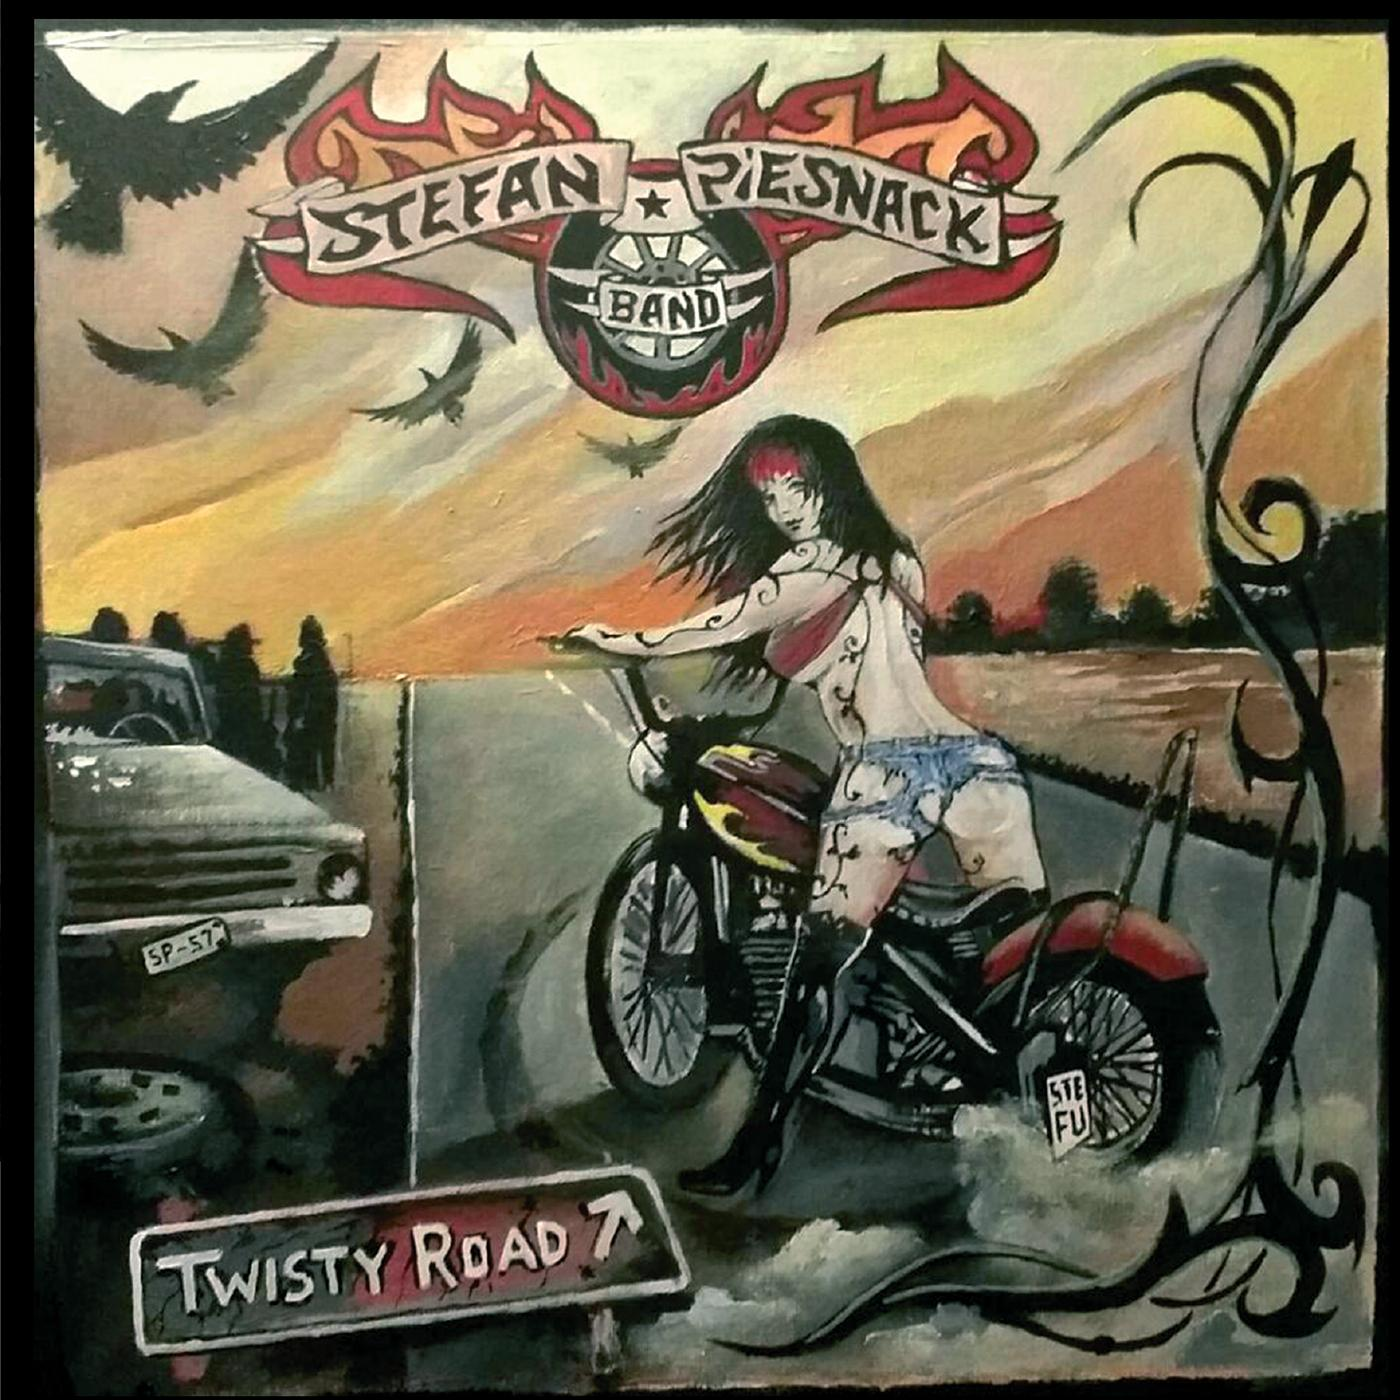 Stefan Piesnack Band: Twisty Road EP